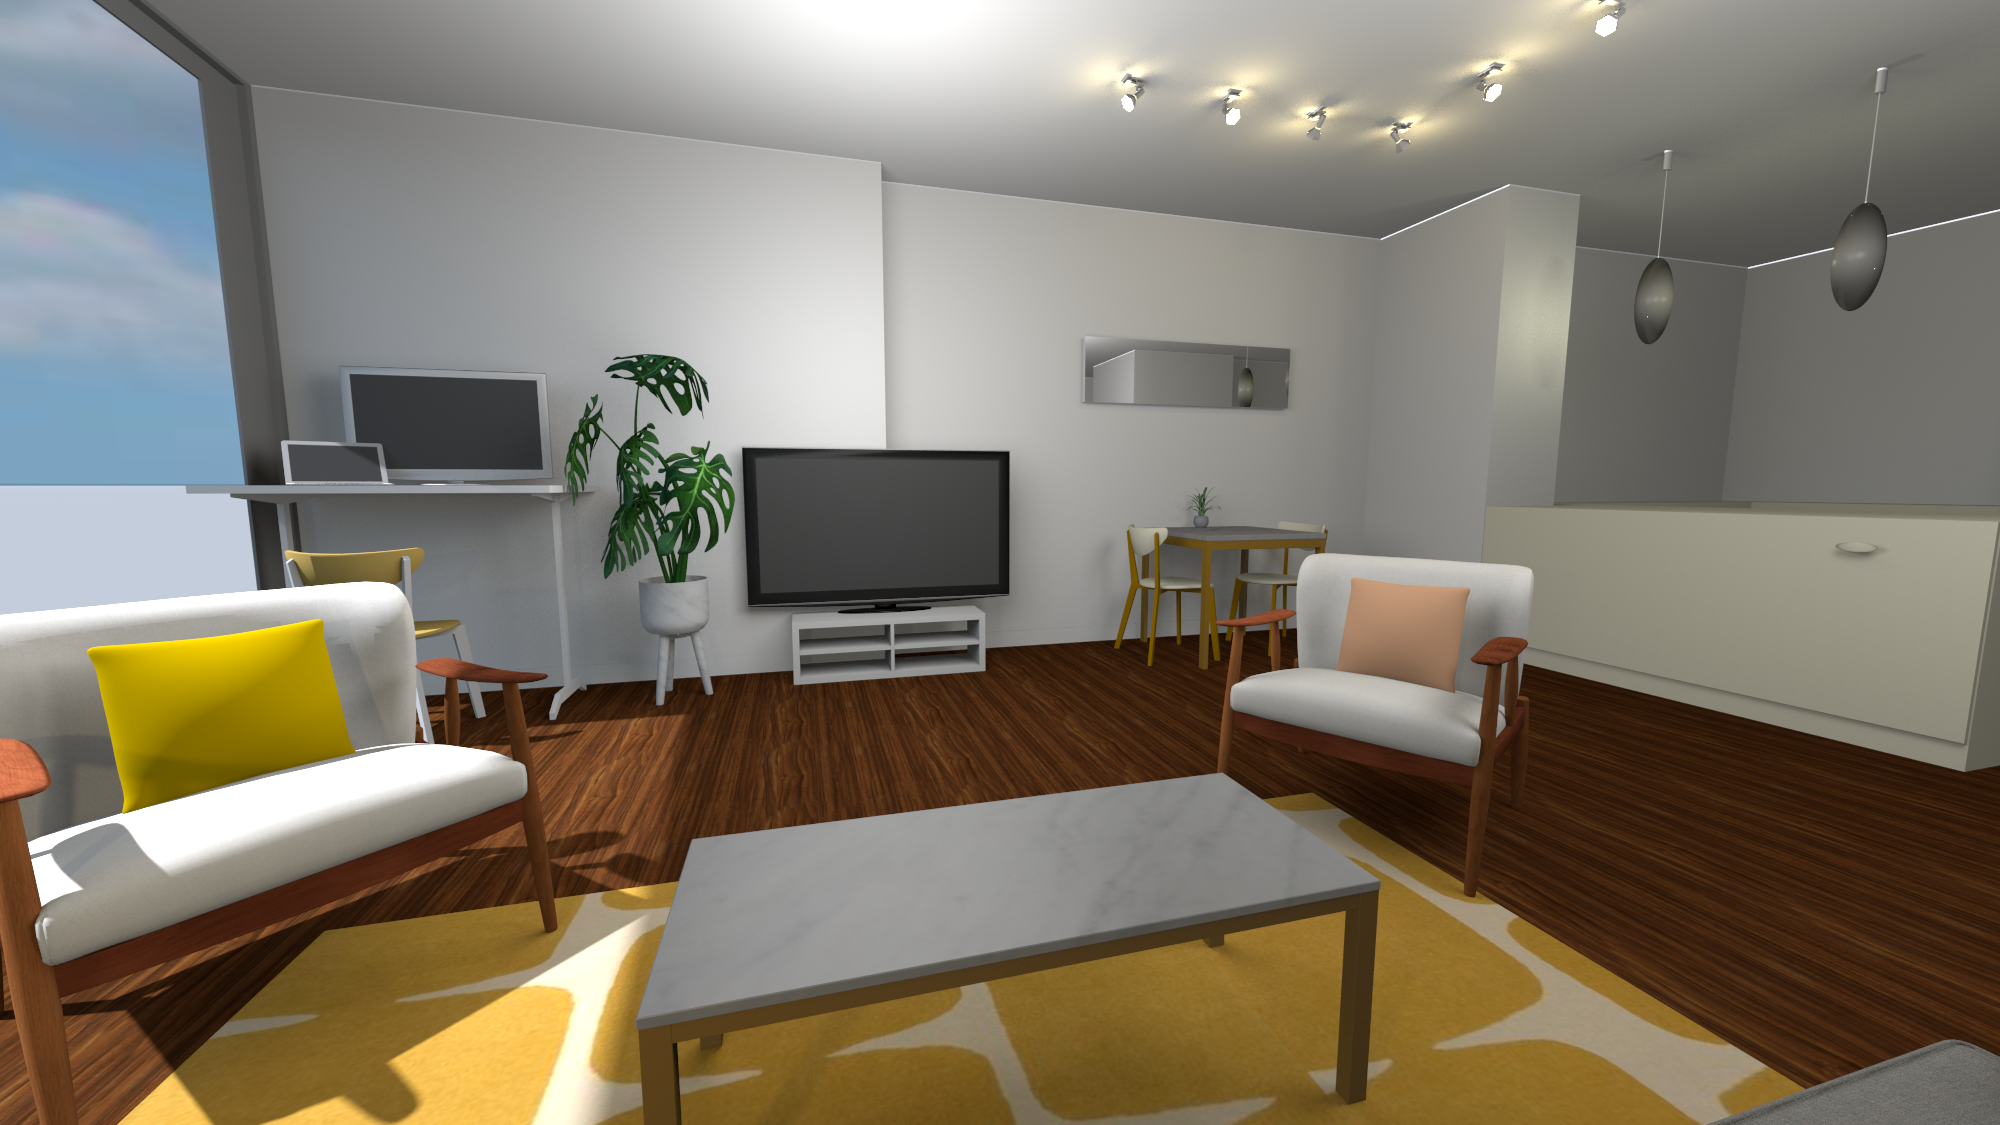 Example render from Sweet Home 3D